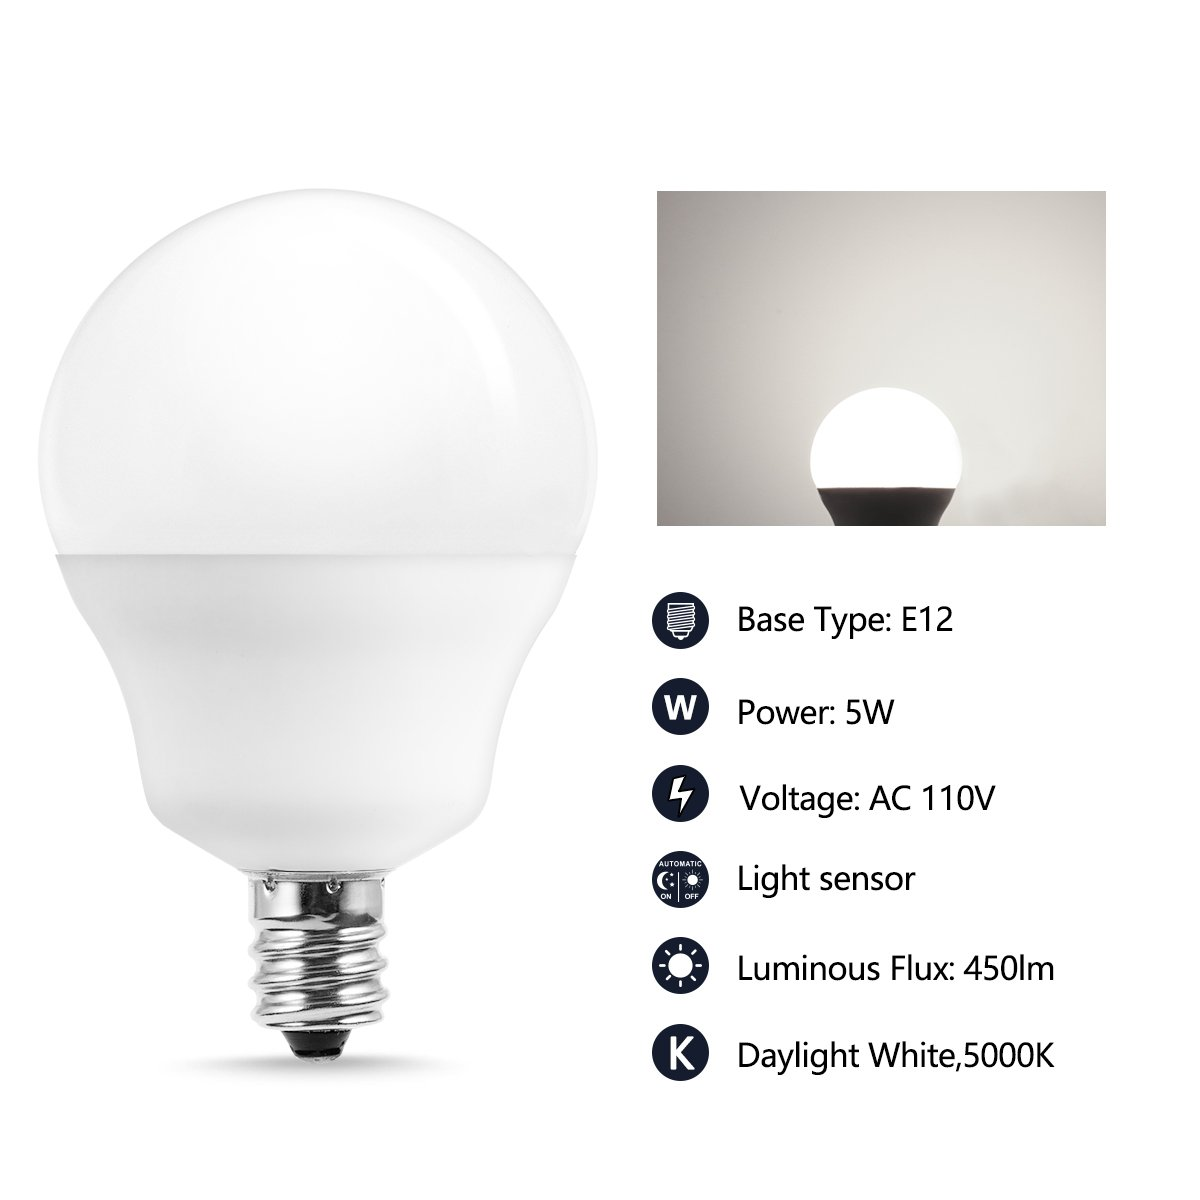 JandCase E12 Light Sensor Candelabra Bulb, Dusk to Dawn LED Bulbs for Porch, Daylight White(5000K), 40W Equivalent, 5W, 450lm, G14 Automatic Indoor/Outdoor Security Lights for Patio, Hallway, 4 Pack by JandCase (Image #3)